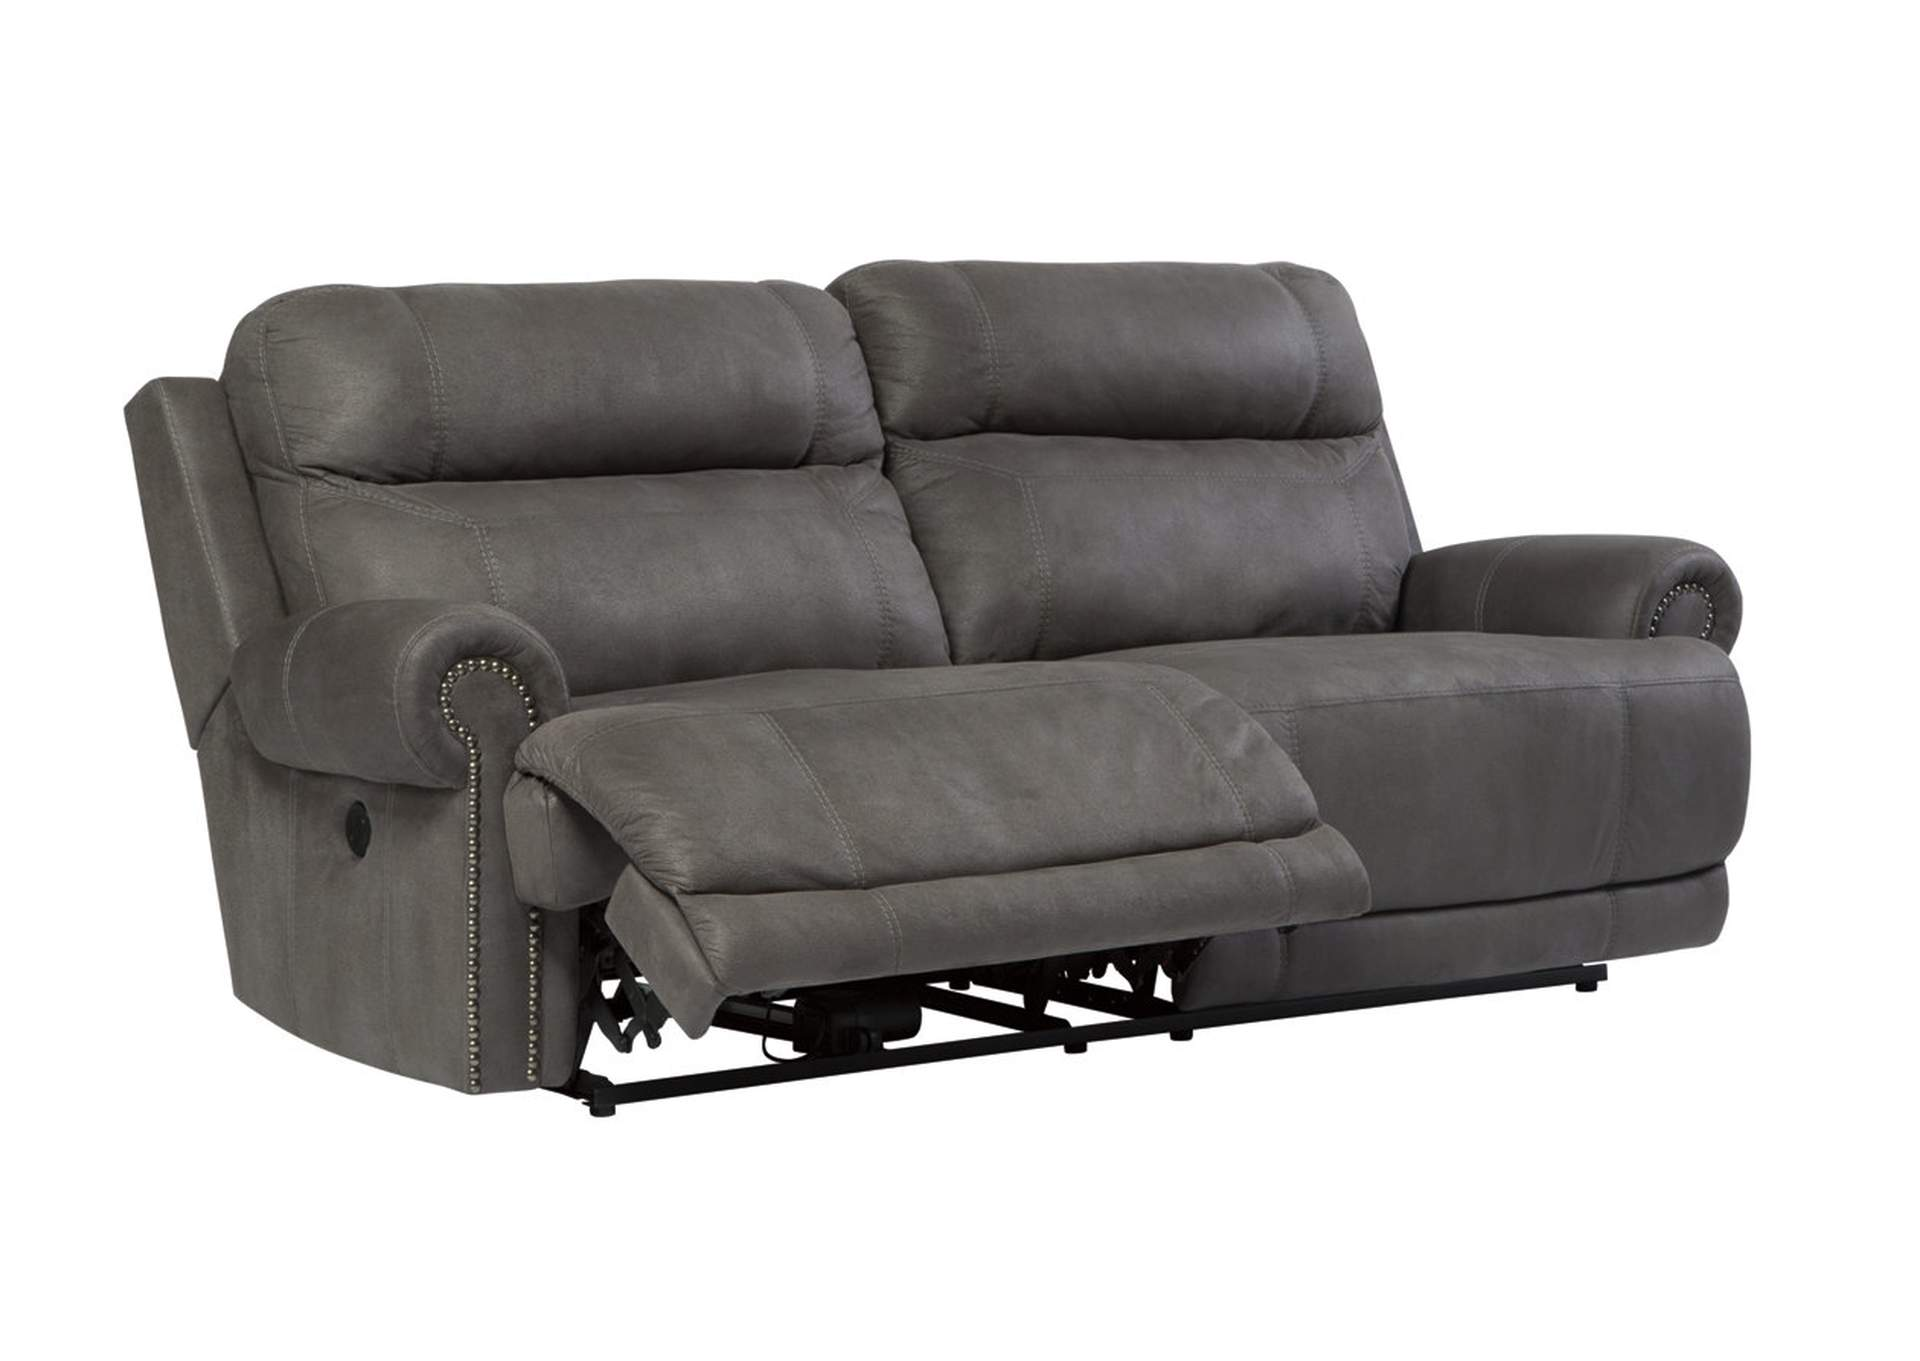 Austere Gray 2 Seat Reclining Sofa,Signature Design By Ashley